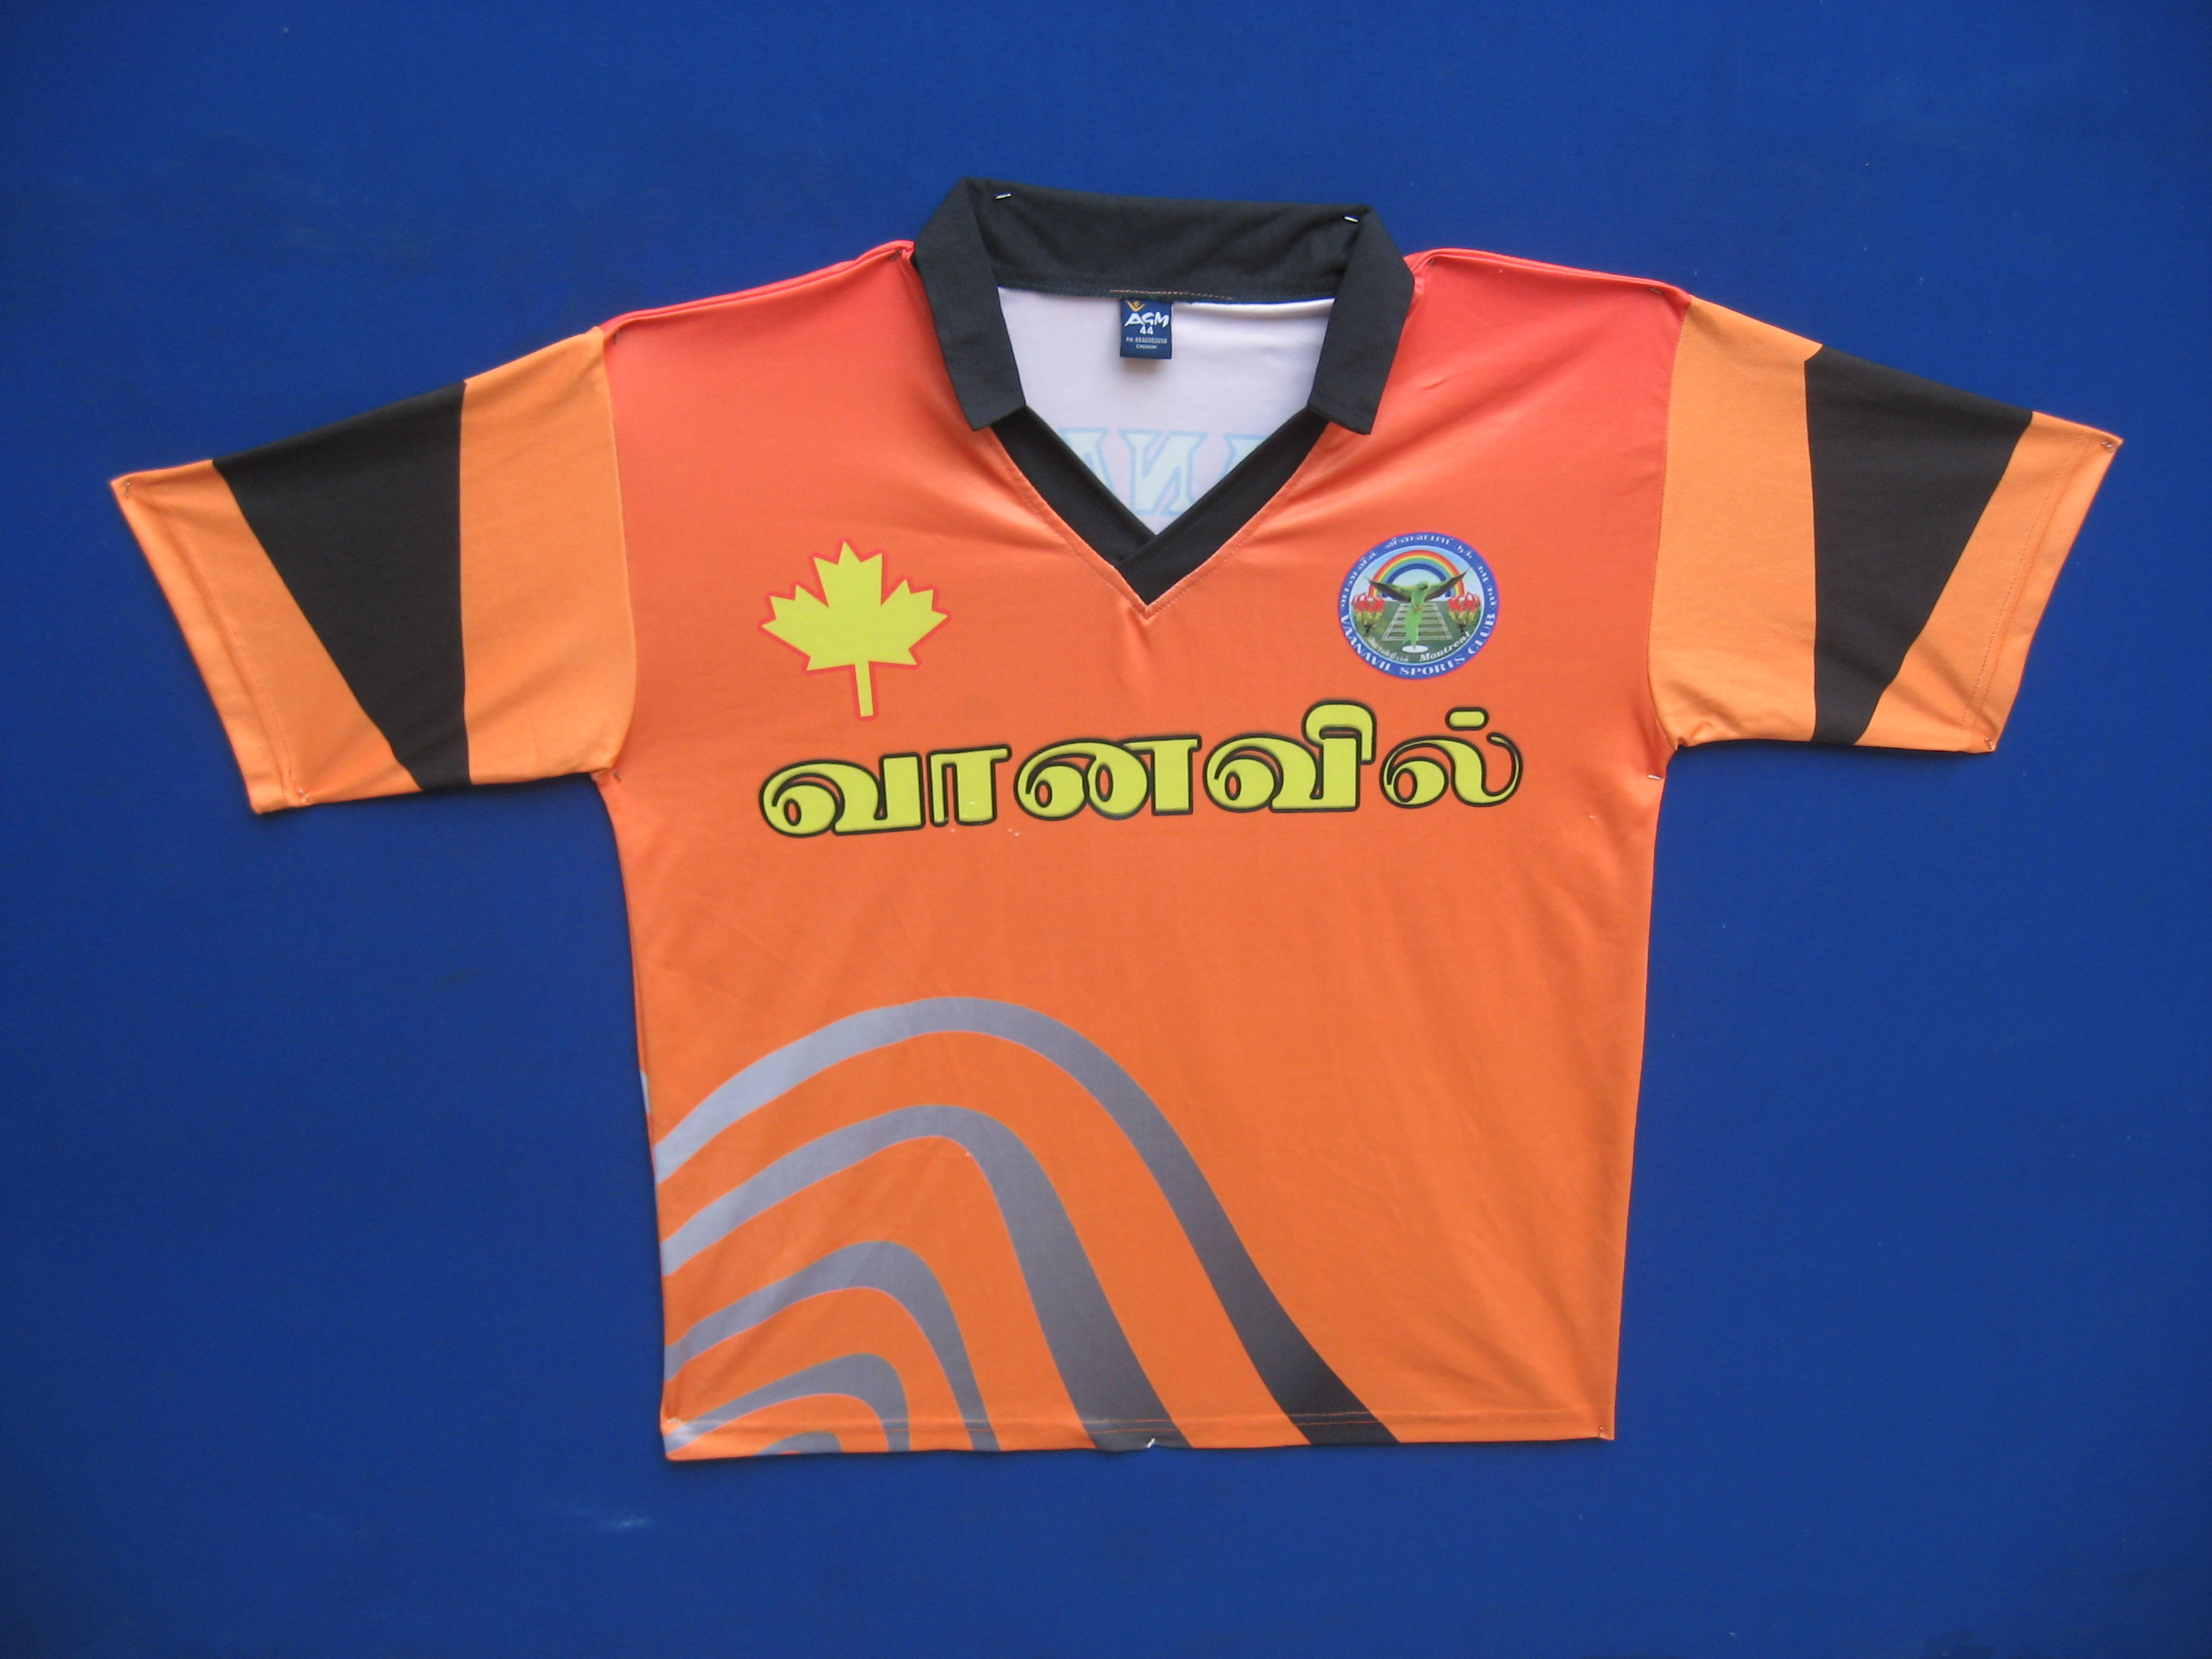 Sublimation T-Shirt - by AGM SPORTSWEARS, Chennai